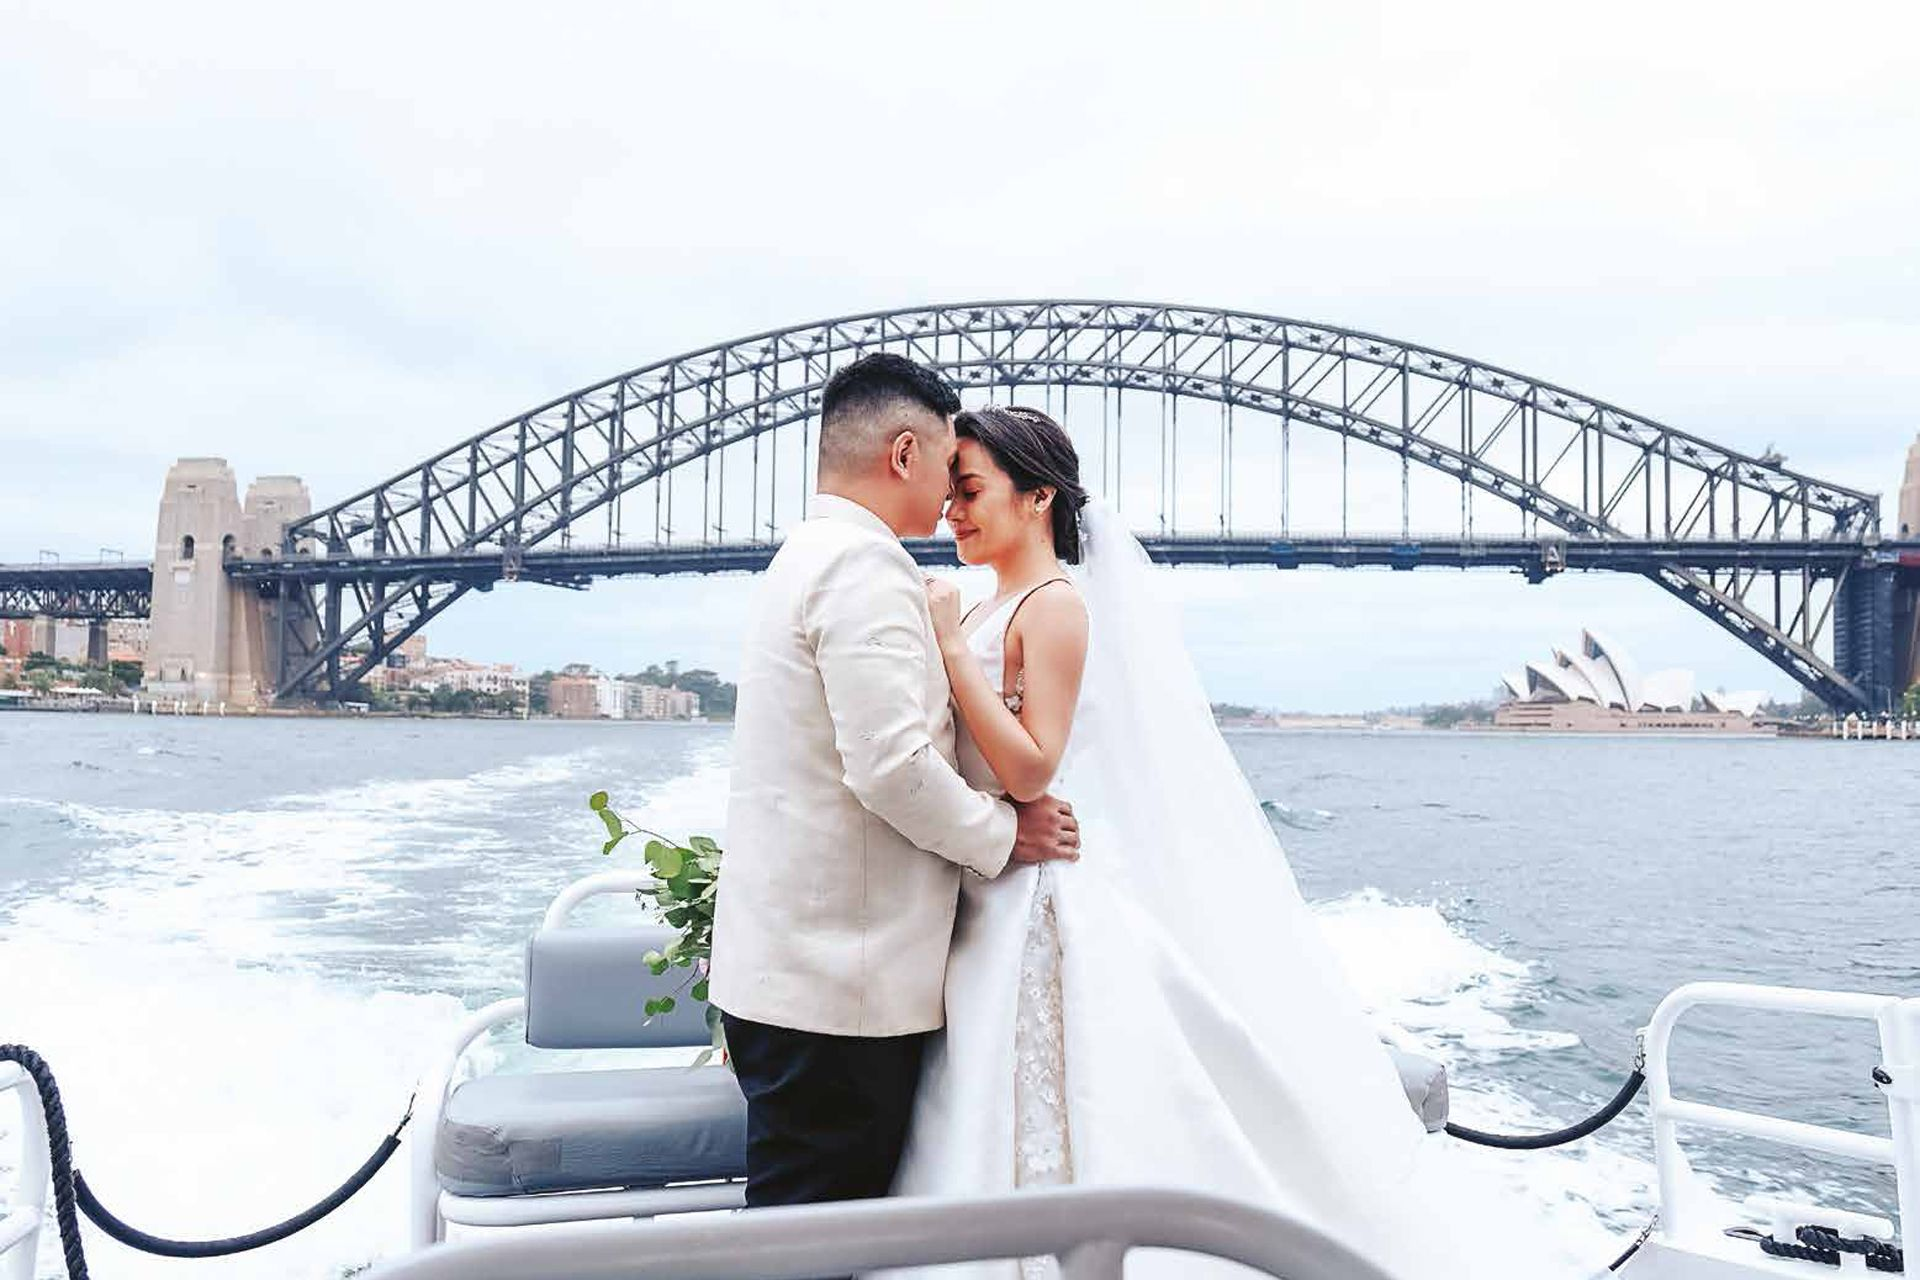 Step Inside Michelle Barrera & Santi Juban's Australian Wedding